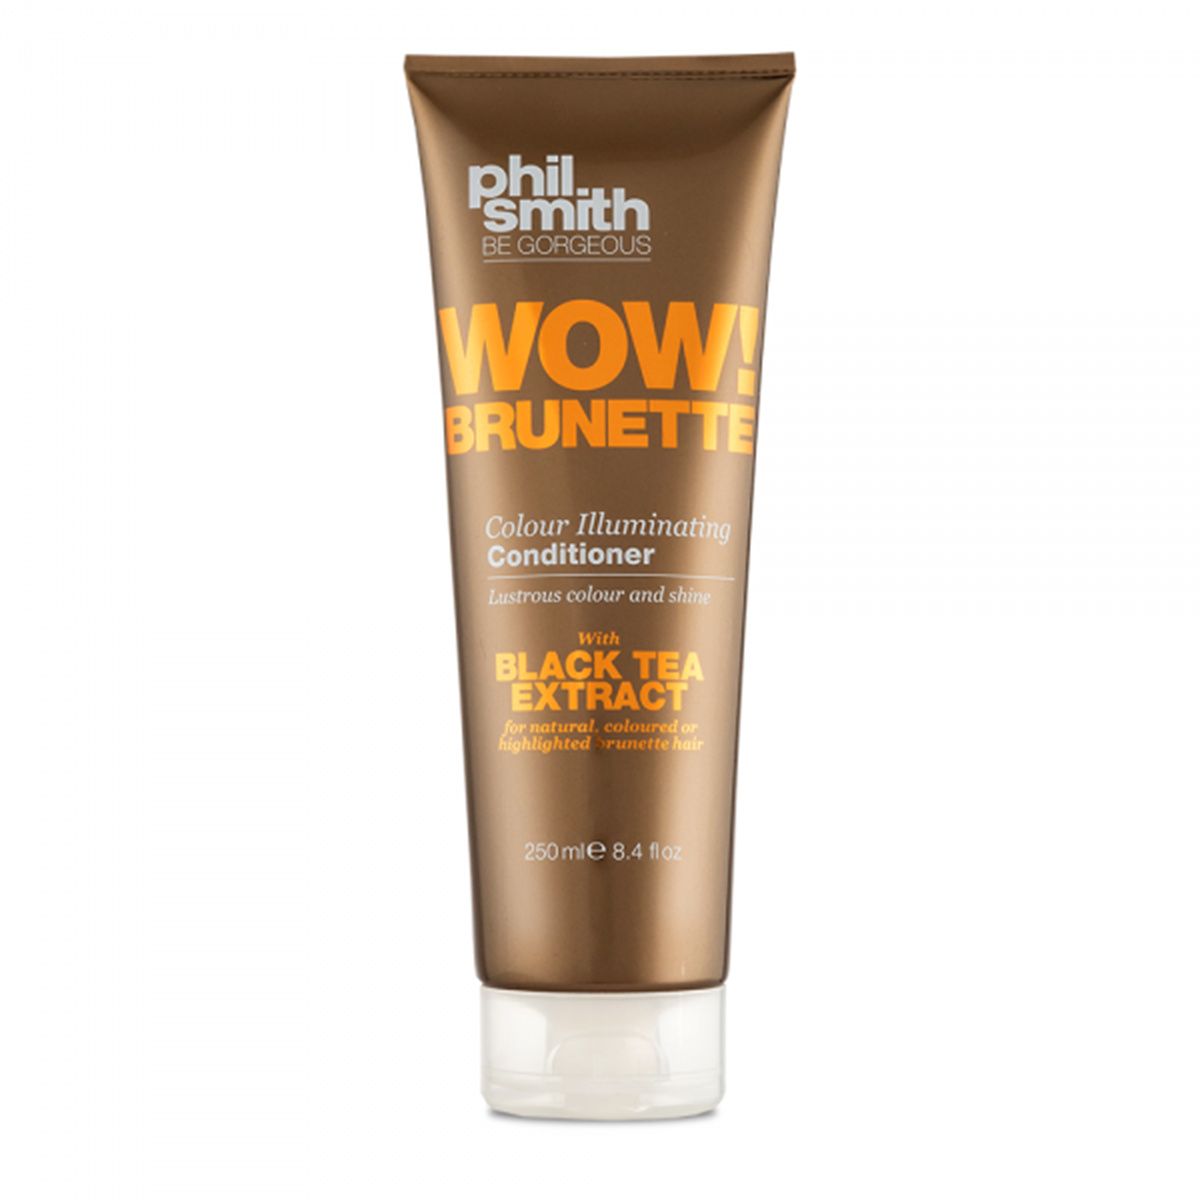 Phil Smith Wow Brunette Saç Kremi 250 Ml